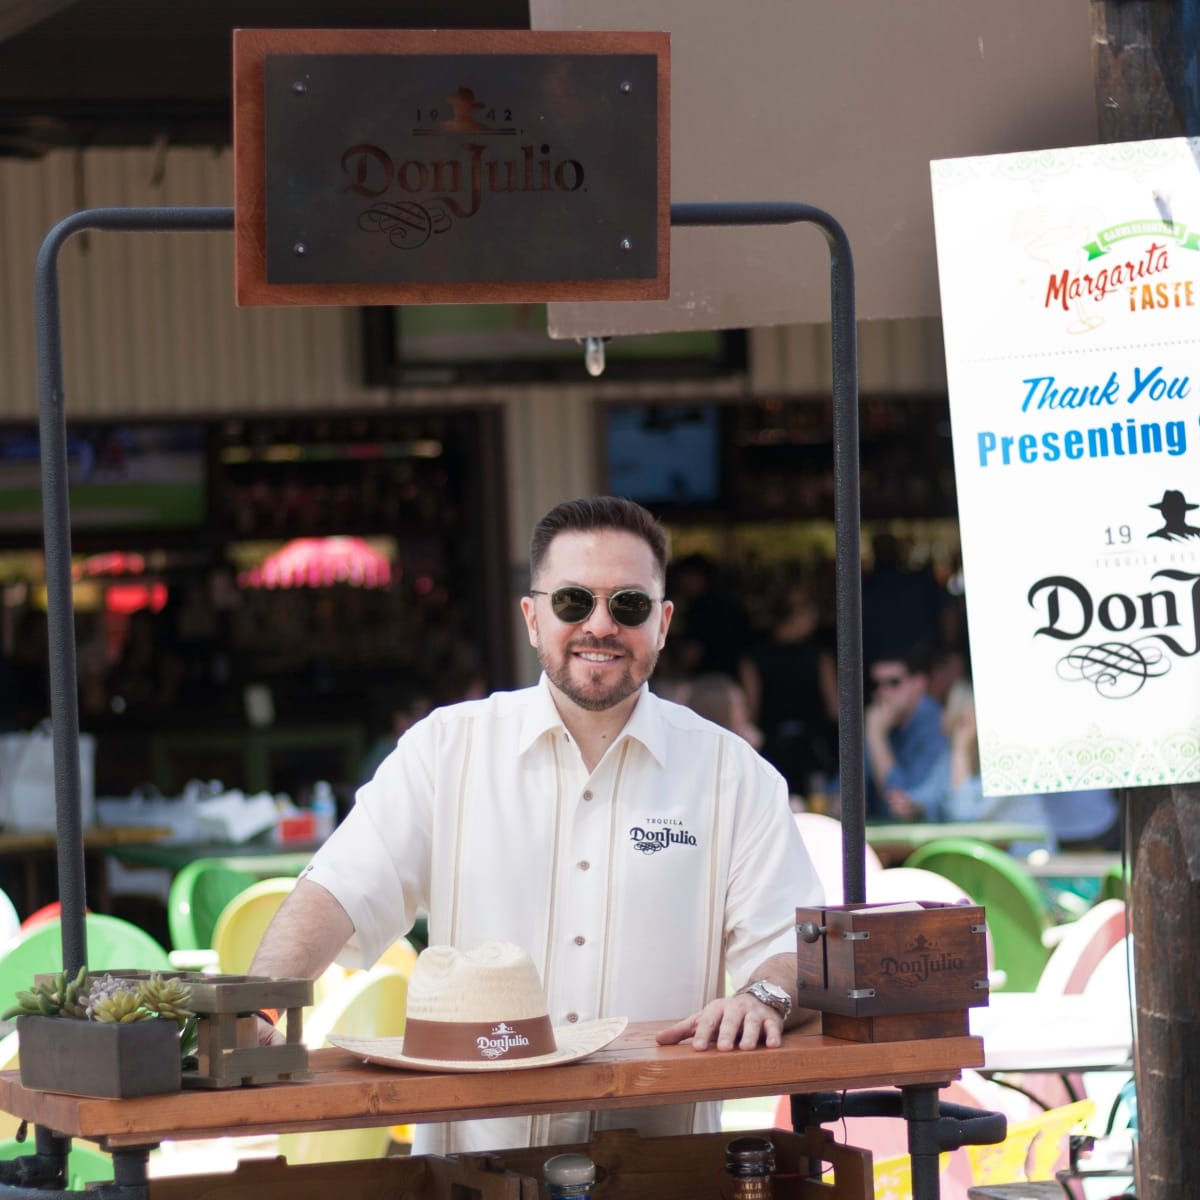 Jorge Raptis, Don Julio Presenting Sponsor at Margarita Taste-off